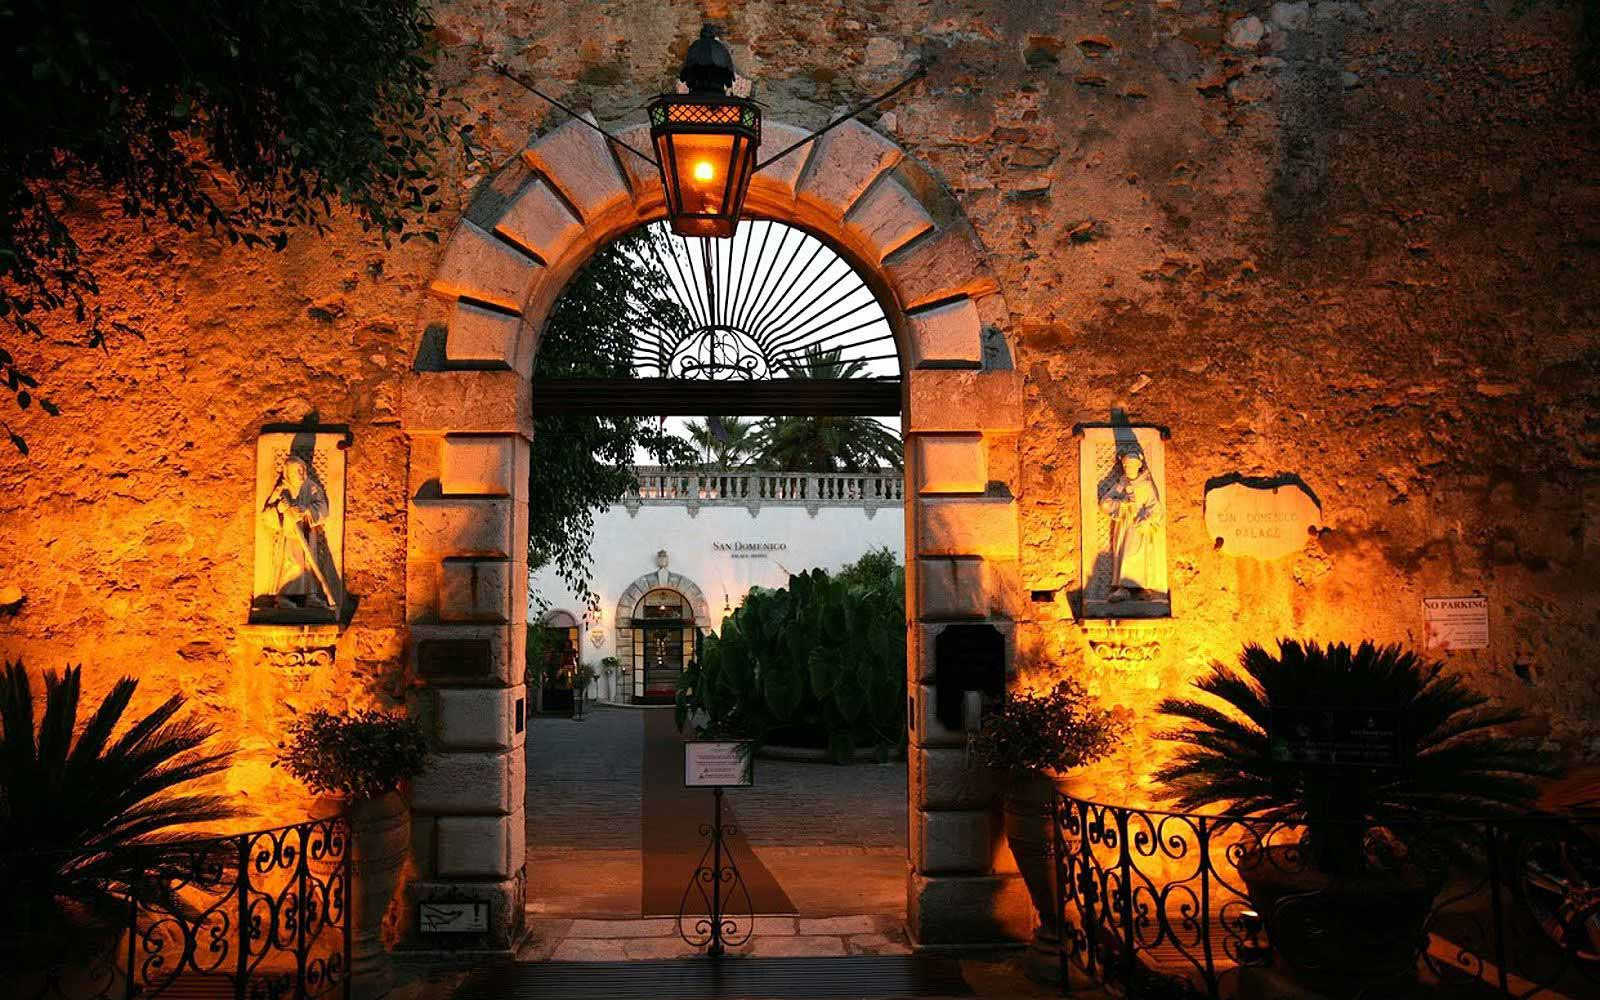 Entrance to the San Domenico Palace Hotel